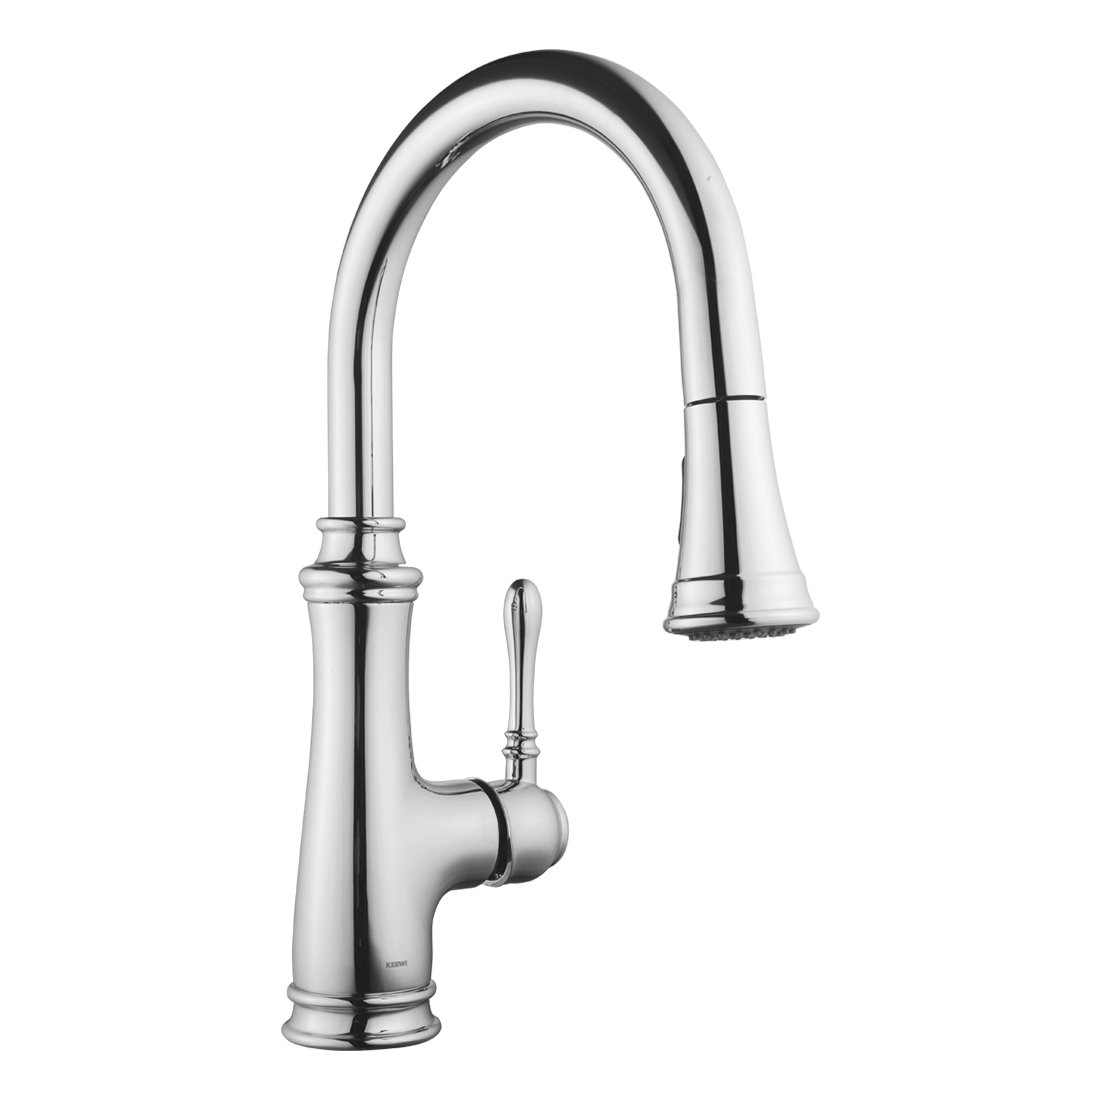 Keewi Kitchen Faucet Chrome Single Handle Pull Down Kitchen Faucet, Kitchen Sink Faucet, Single Hole Kitchen Faucet with Sprayer, Single Lever Kitchen Faucet Sink Faucet with Sprayer